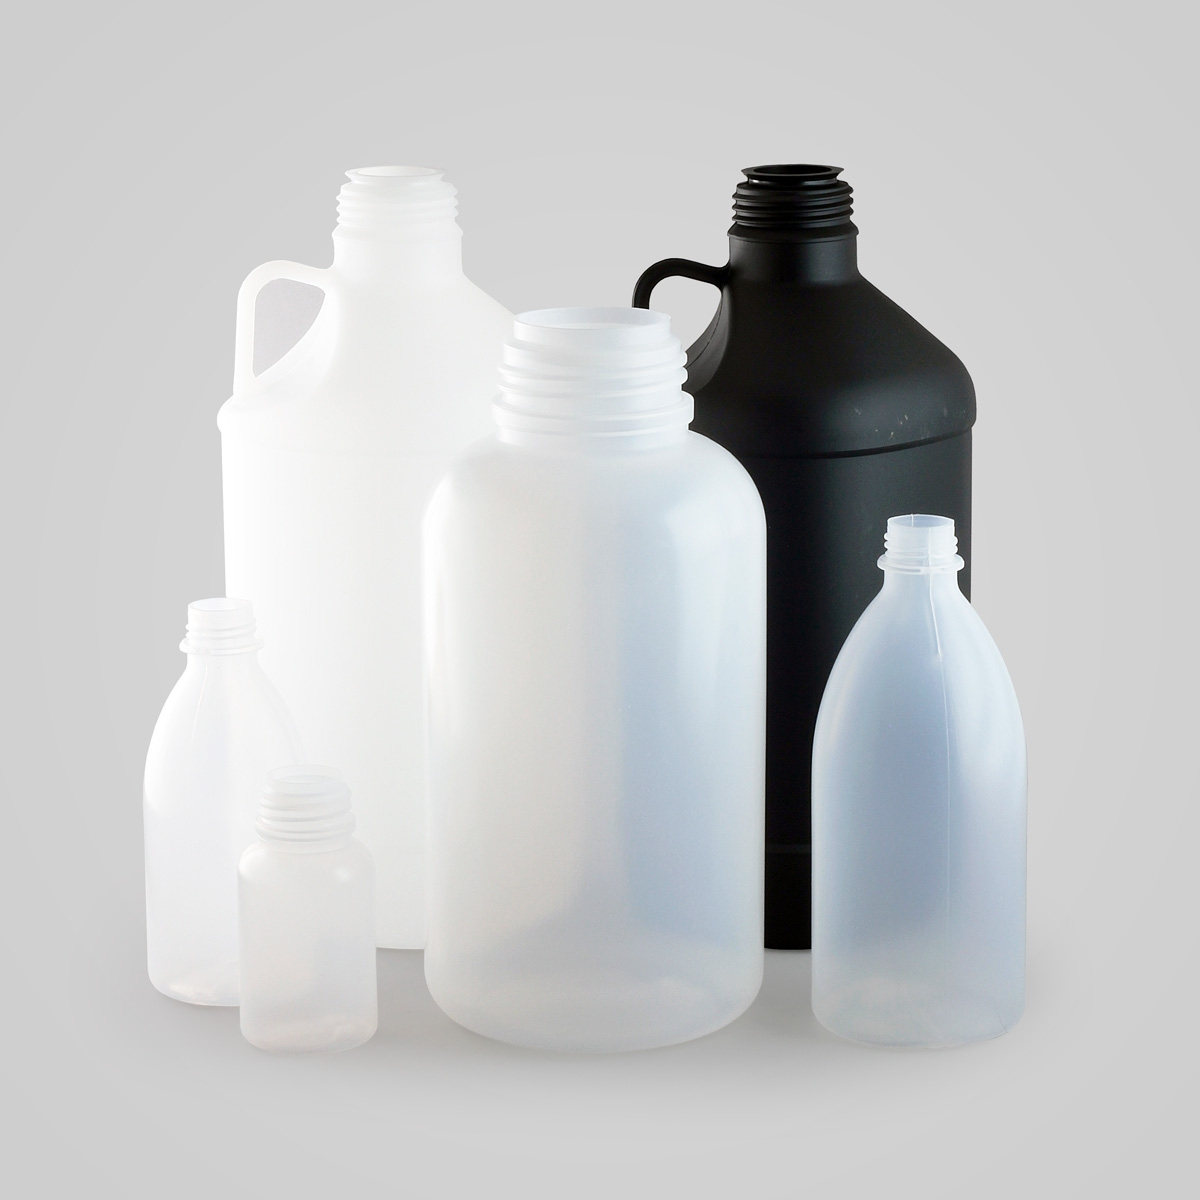 Heavy Duty Kautex Bottles